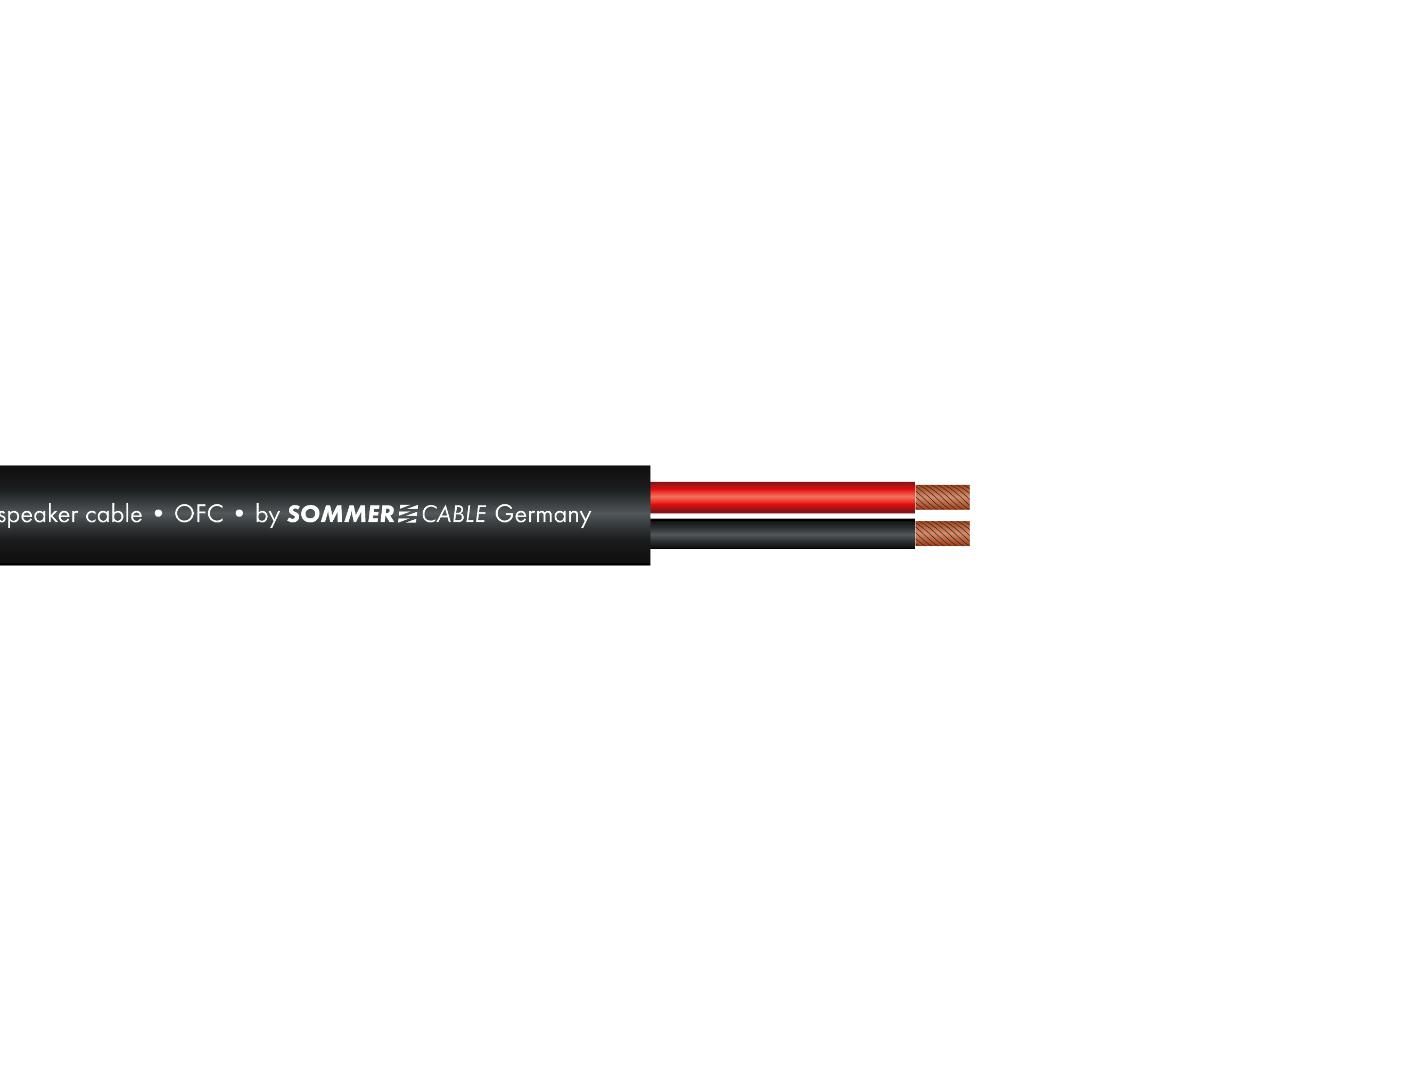 Cable Coil Coil Cable Bulk 2x2,5 100mt Sommer